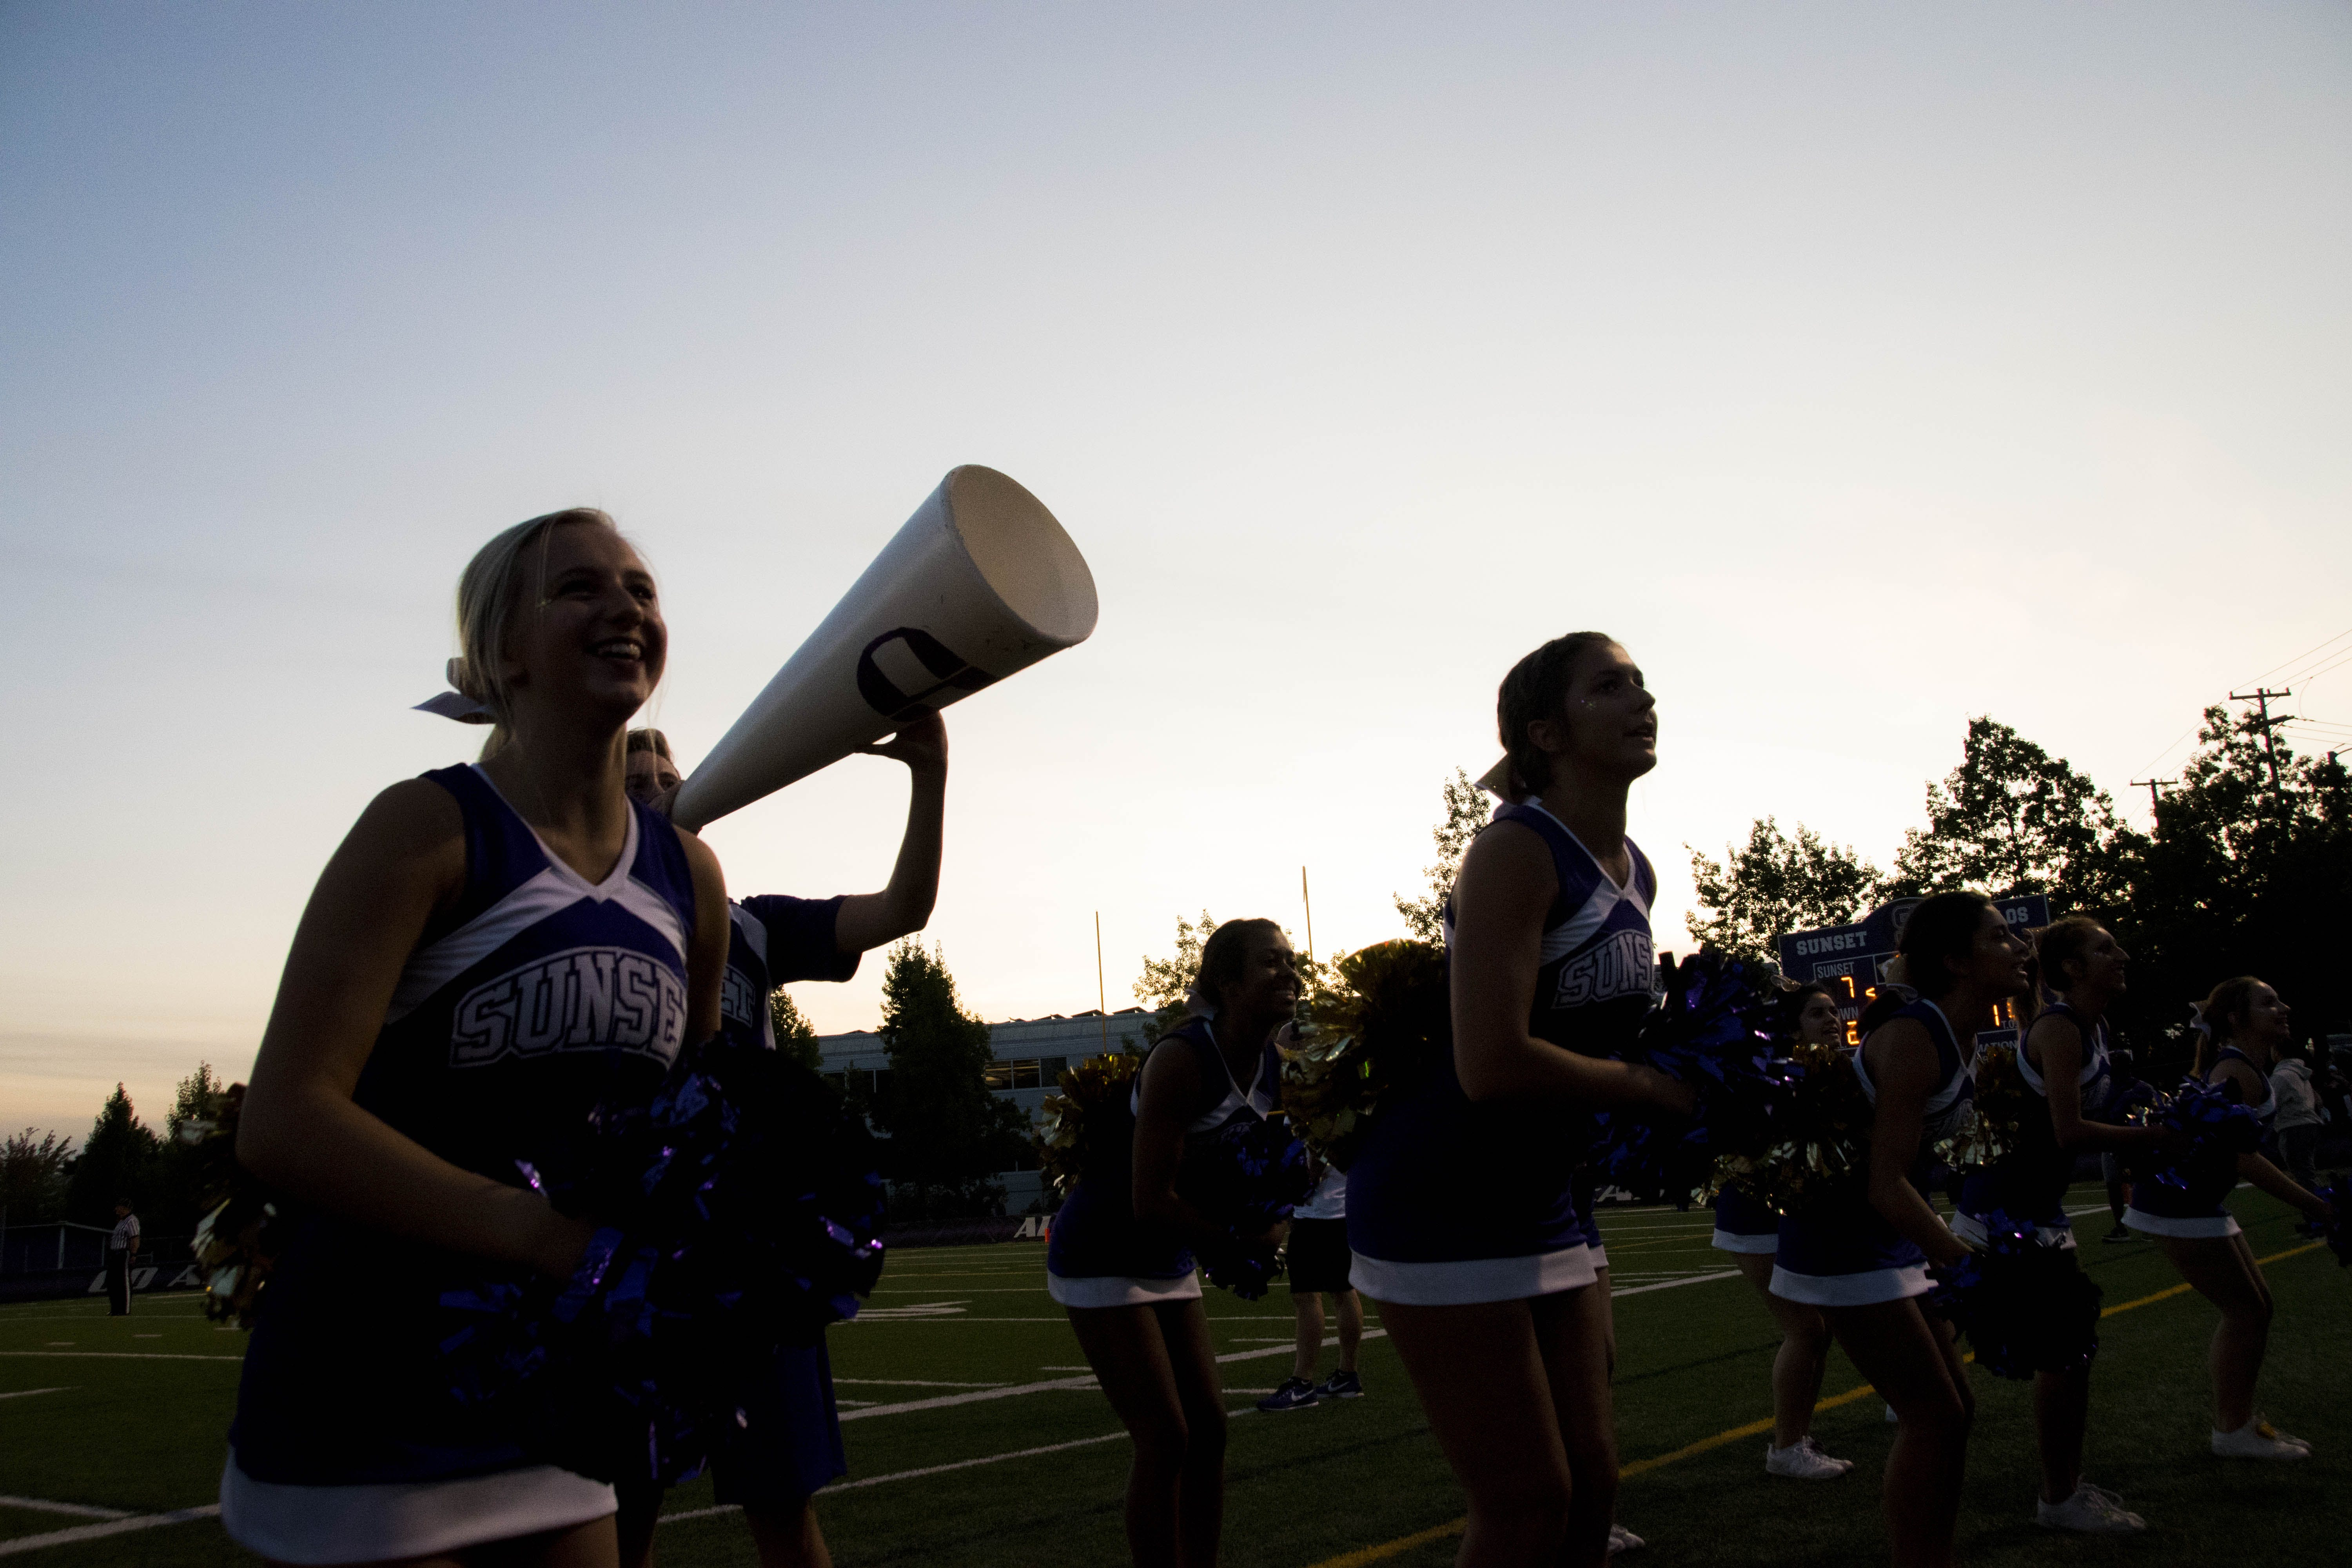 Cheering Squad on Football Field